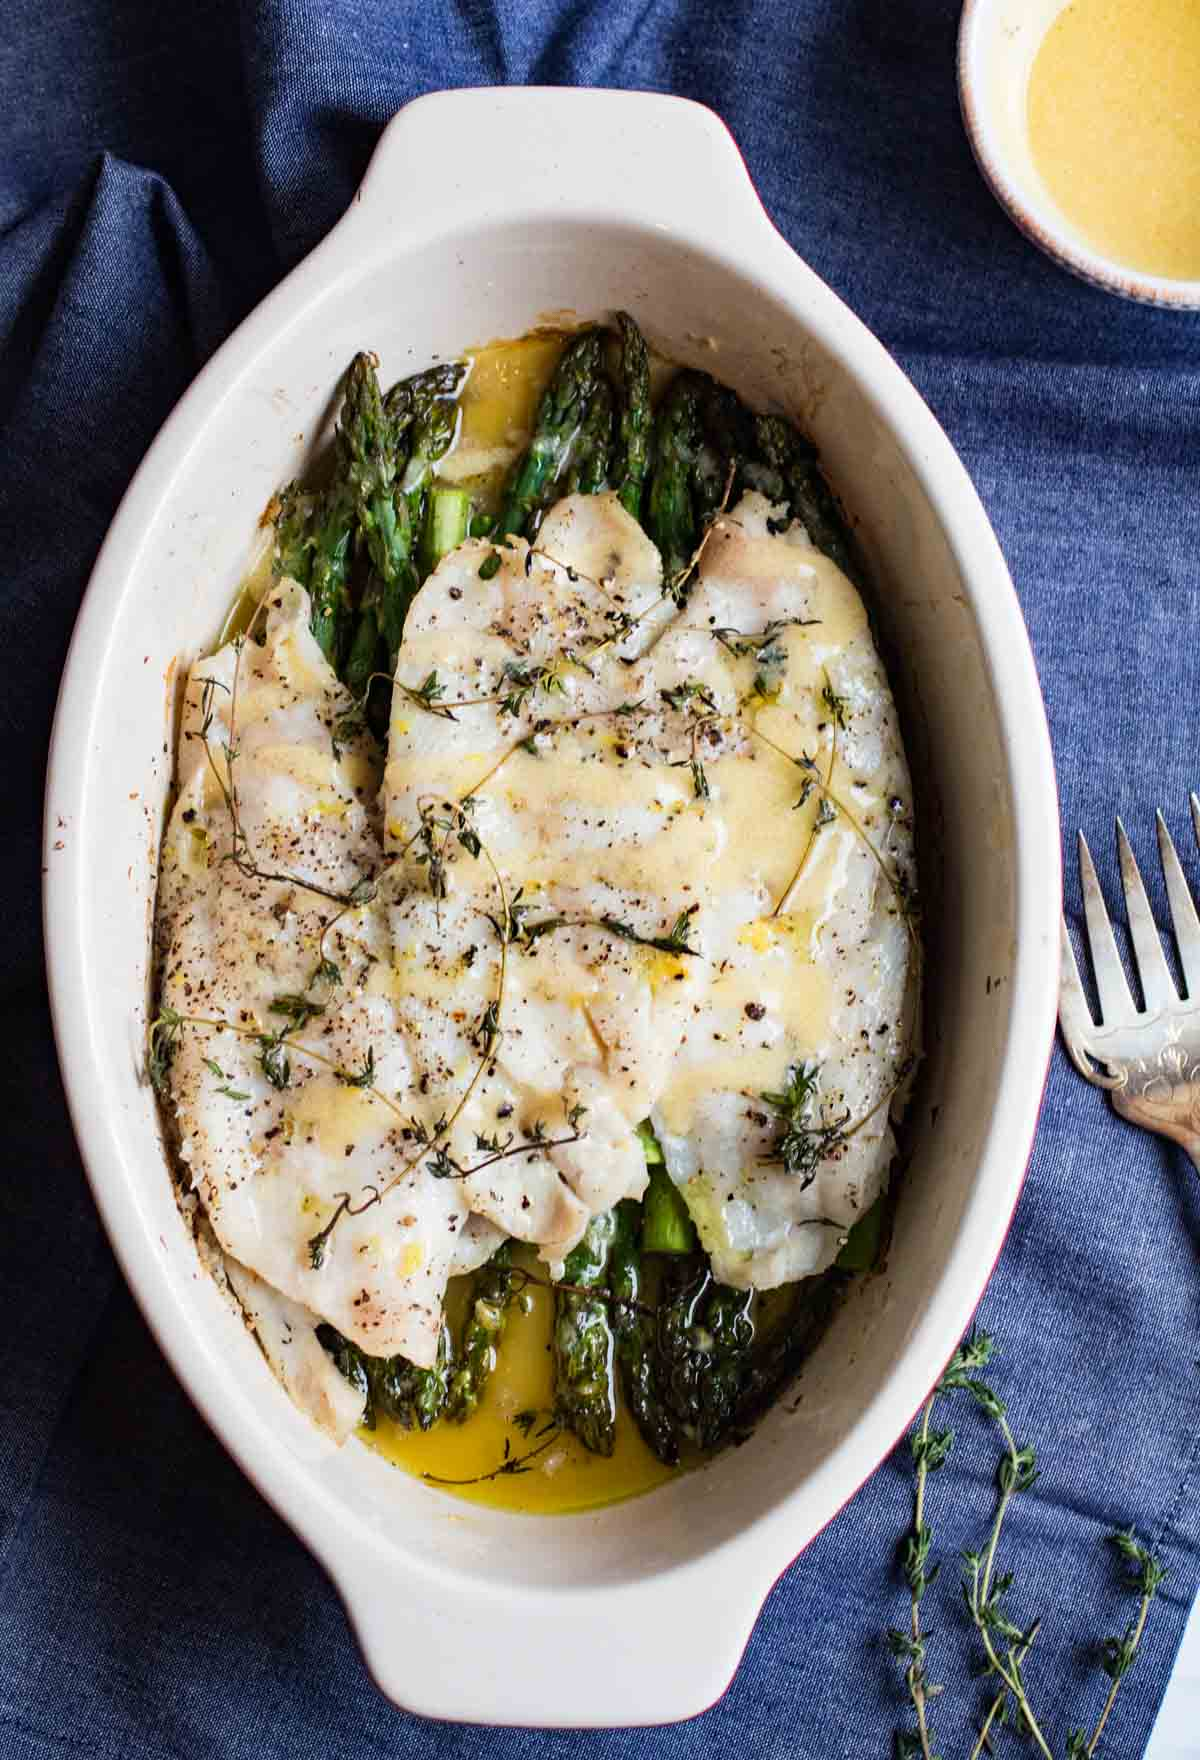 Lemon Thyme Roasted Sole and Asparagus with a creamy dijon lemon sauce. A delicious easy to prepare roasted fish dish that is gluten free, paleo friendly, and whole 30 compliant. Spring is here, and you should celebrate with this perfectly seasonal roasted sole. |abraskitchen.com